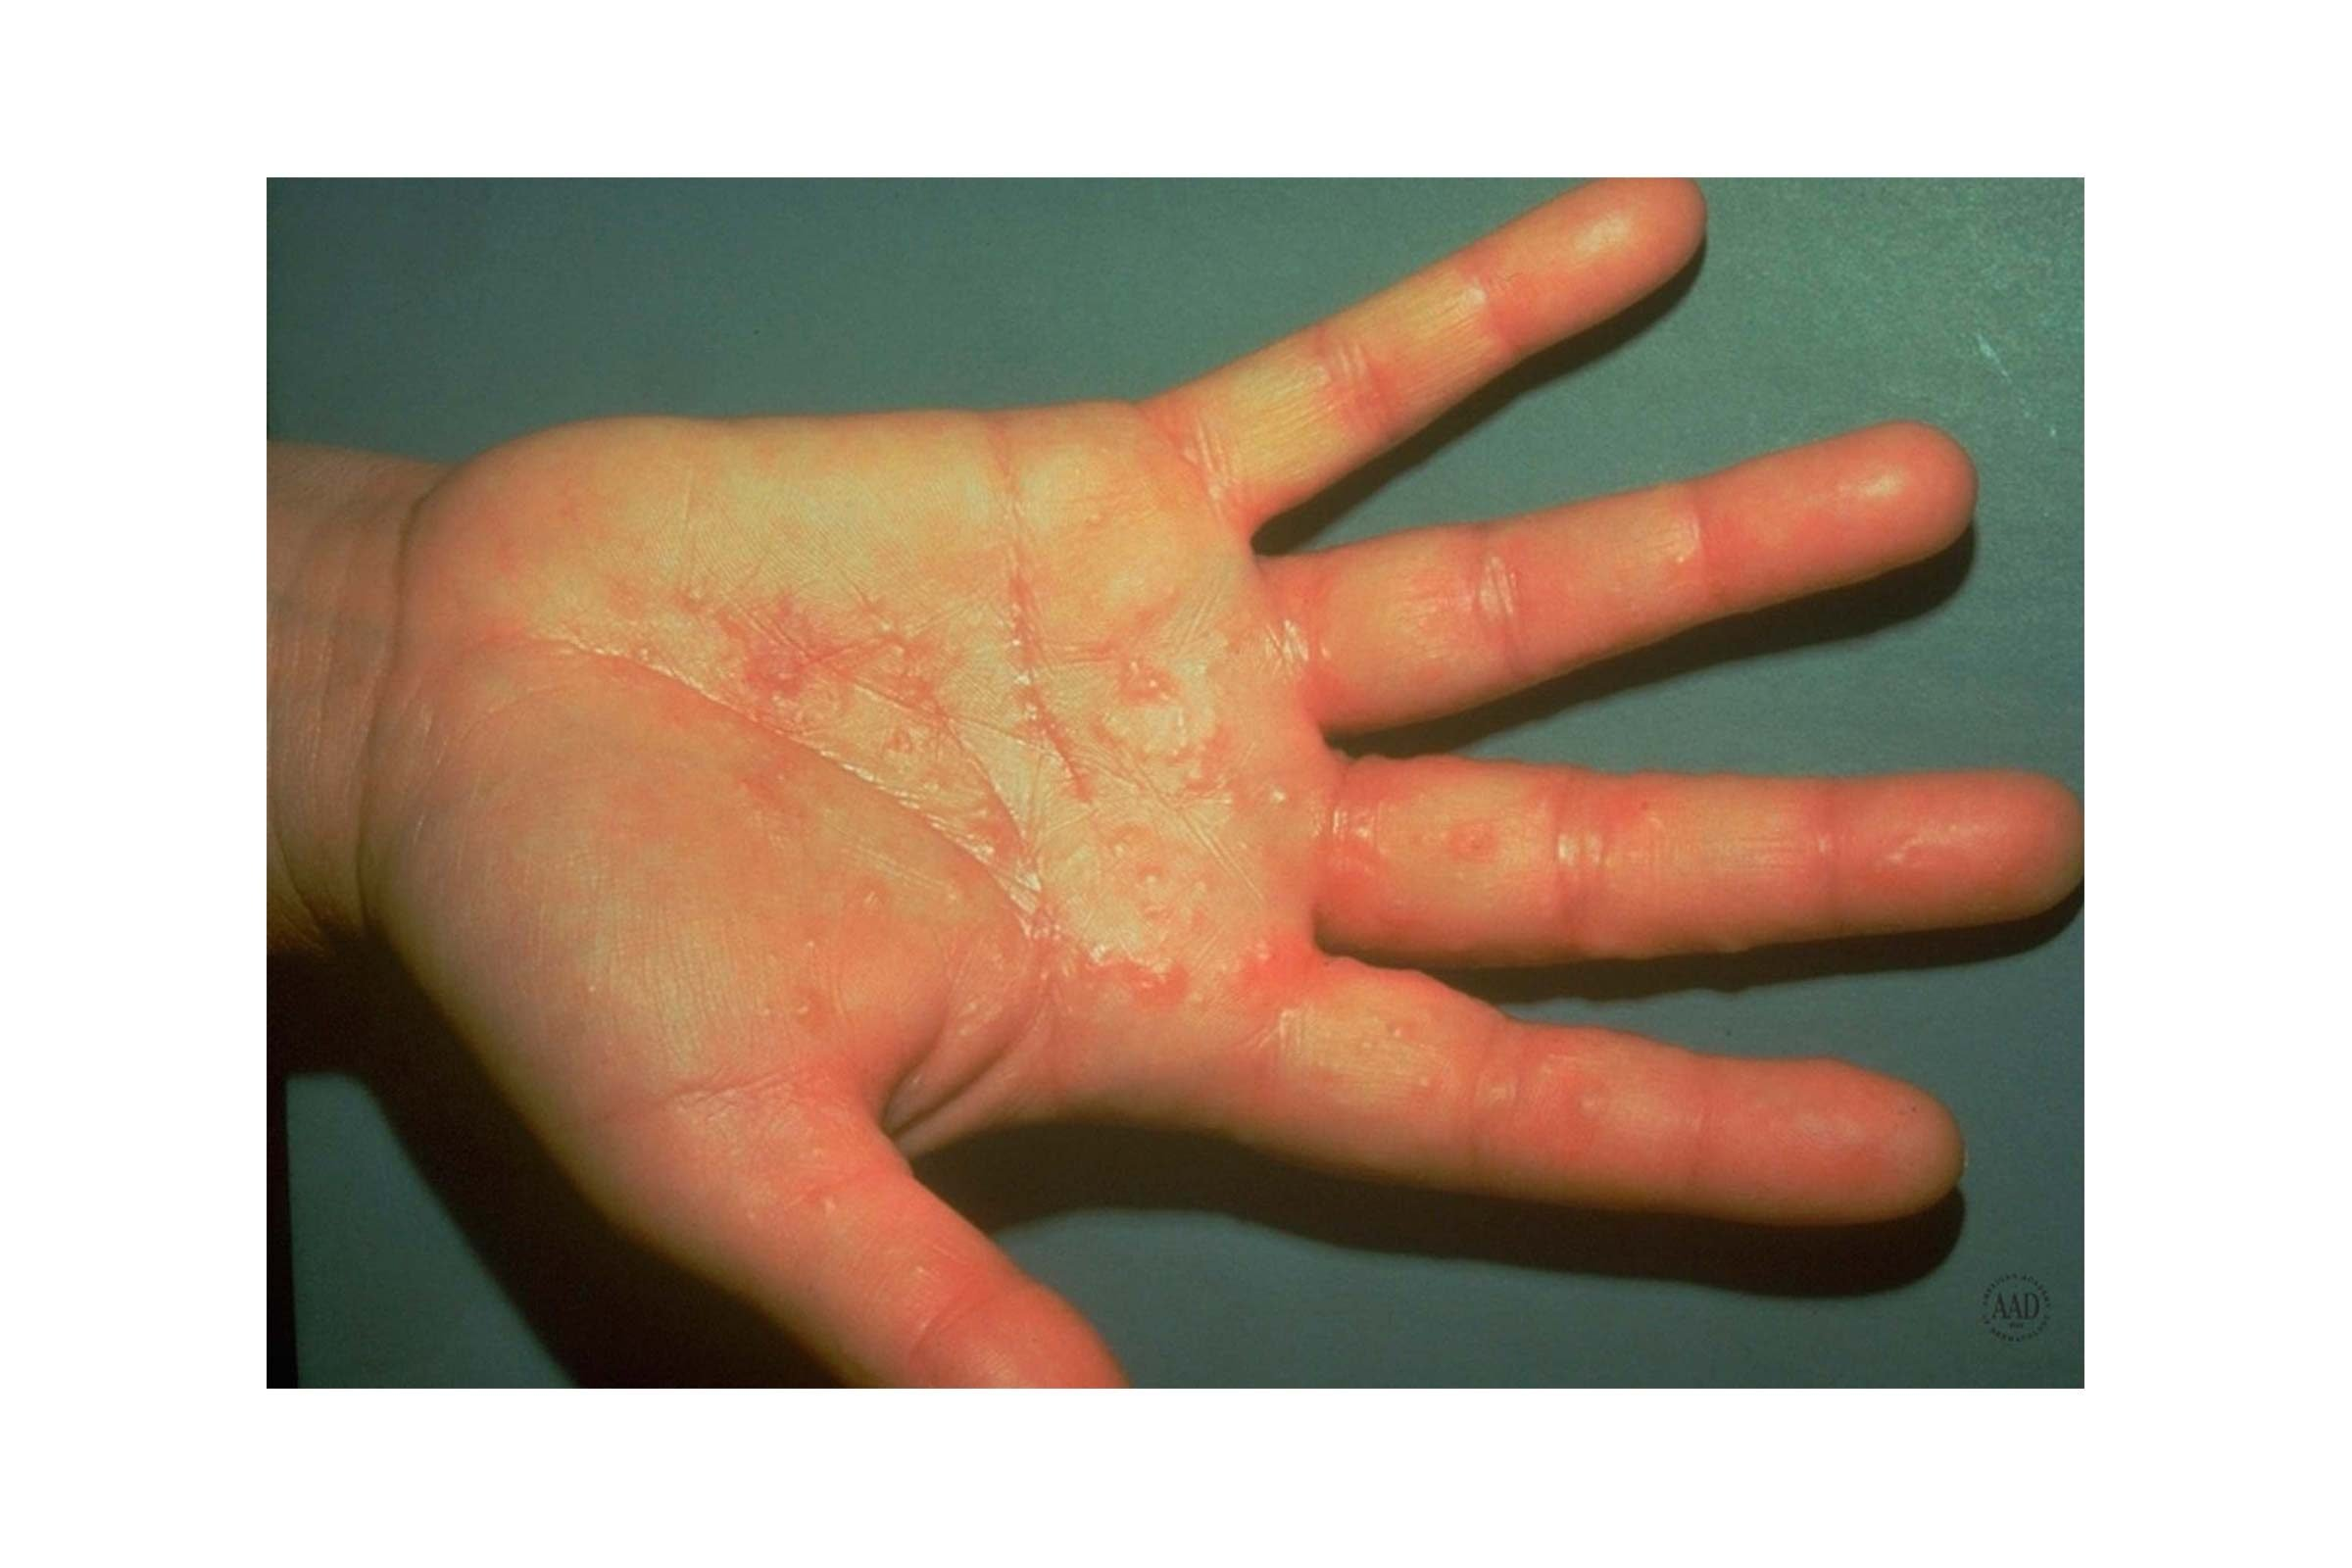 contact dermatitis on the palm of the hand